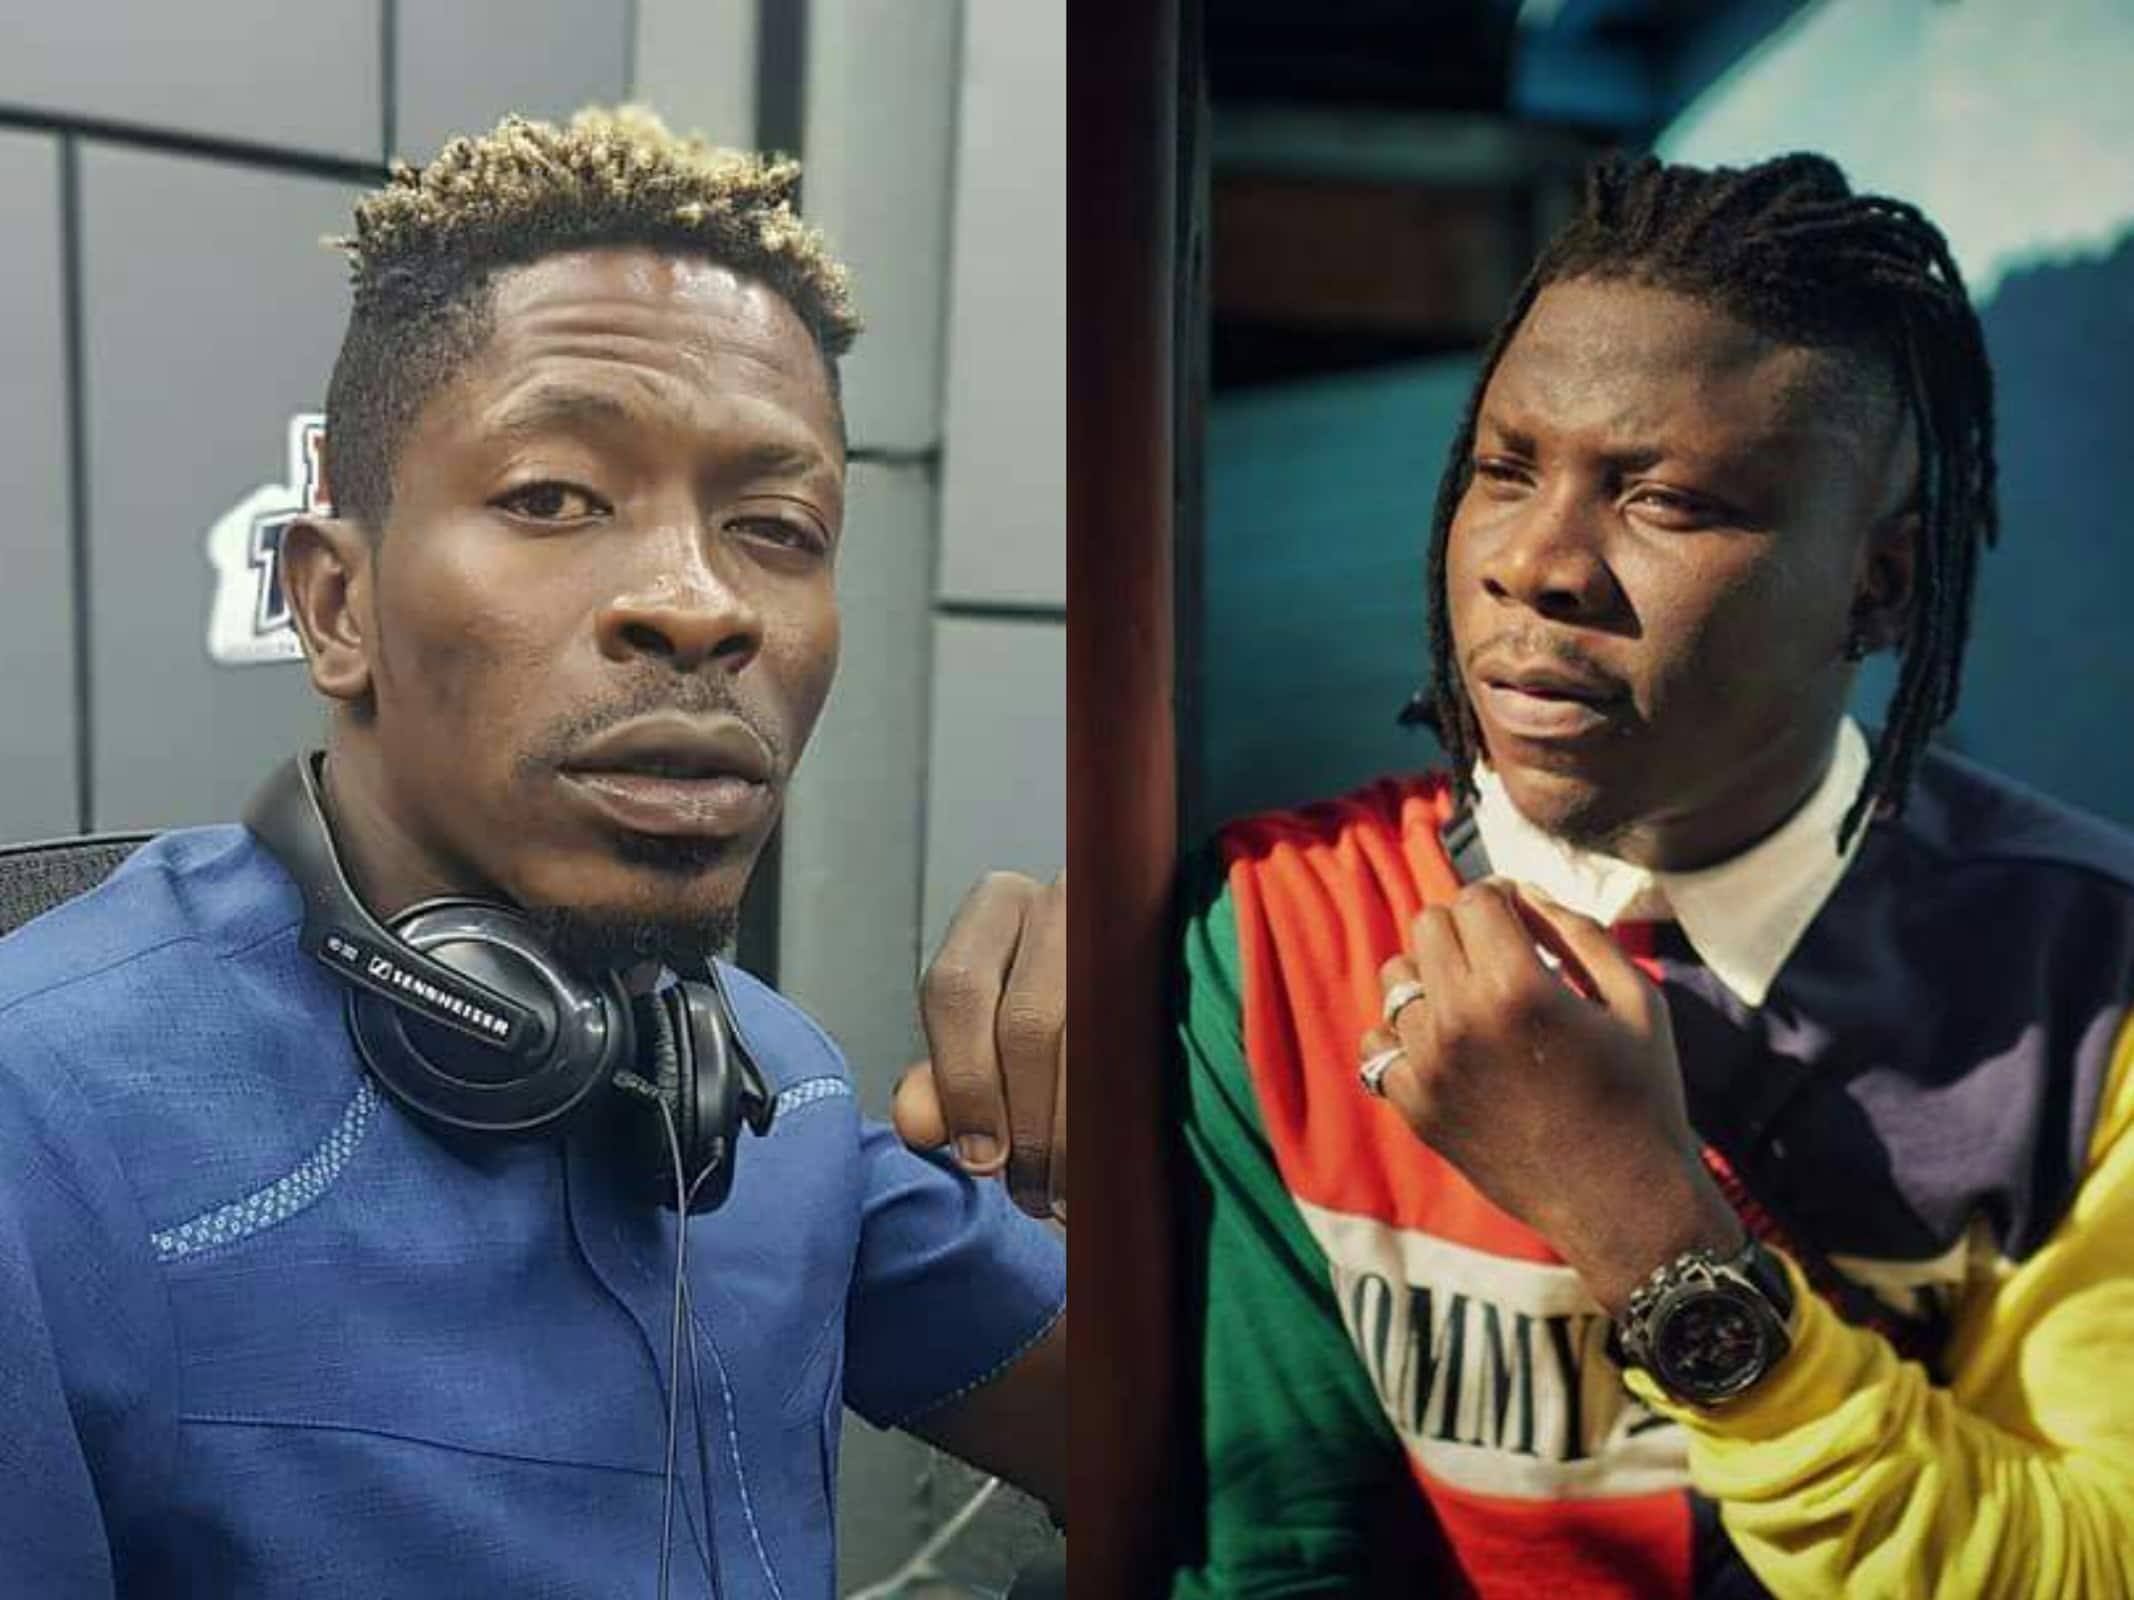 I will not allow Shatta Wale to tarnish my reputation - Stonebwoy